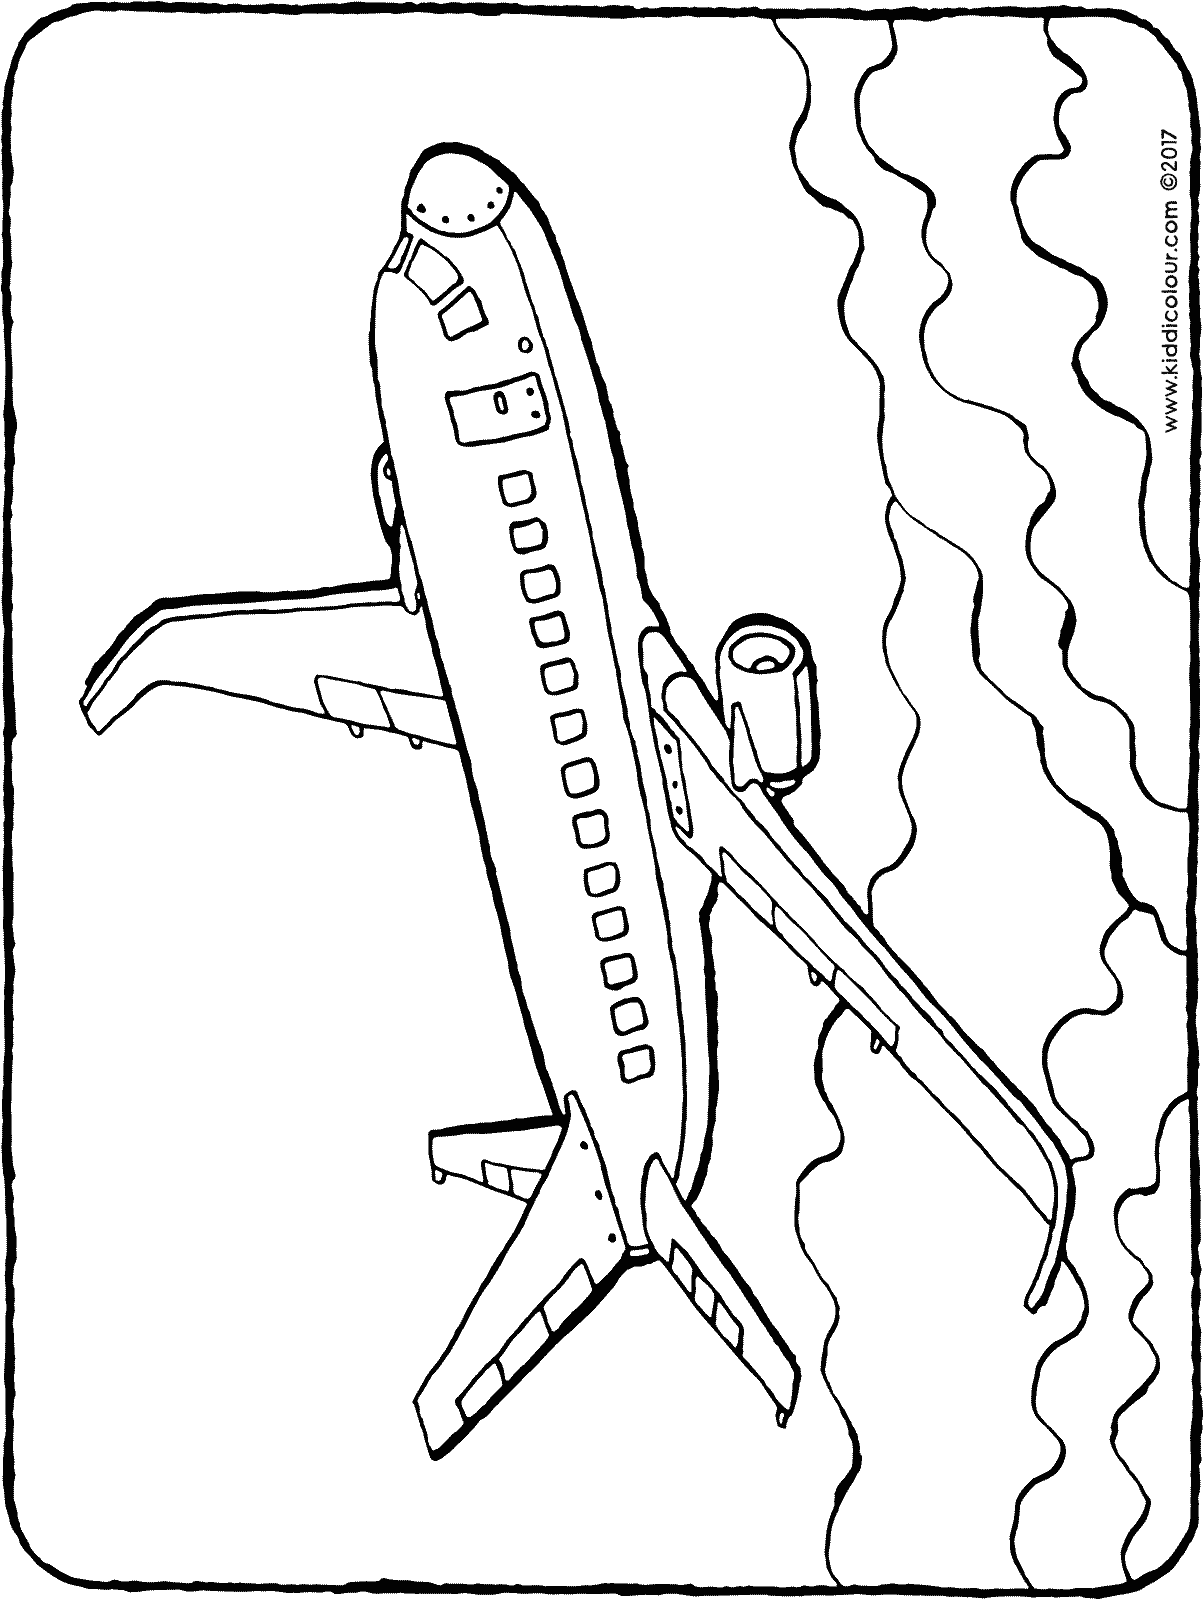 plane colouring page drawing picture 01H